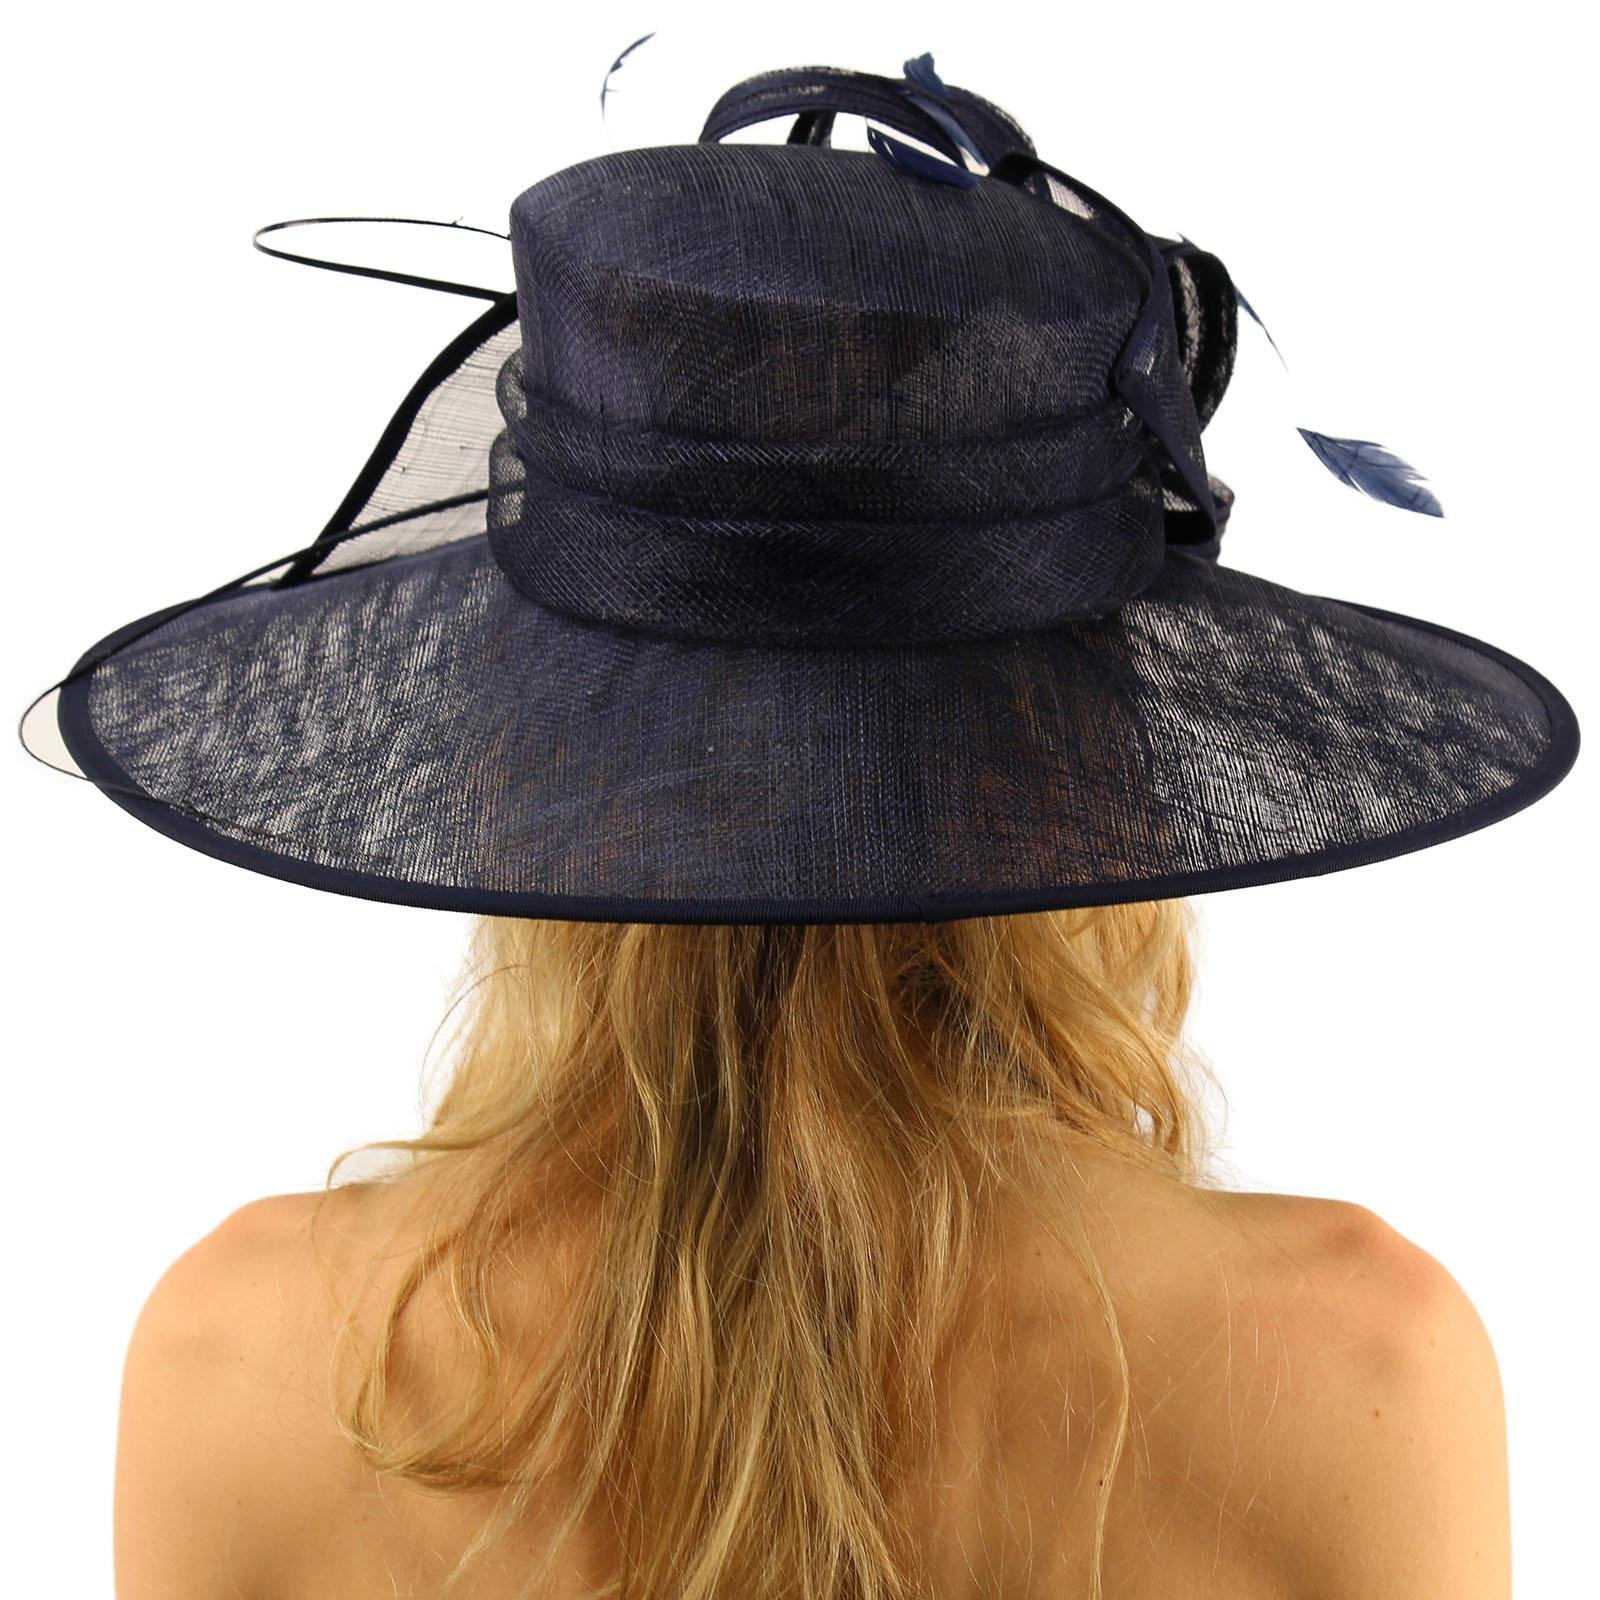 British Regal Sinamy Ribbon Feathers Quill Derby Floppy Bucket Dressy Hat Navy by SK Hat shop (Image #4)